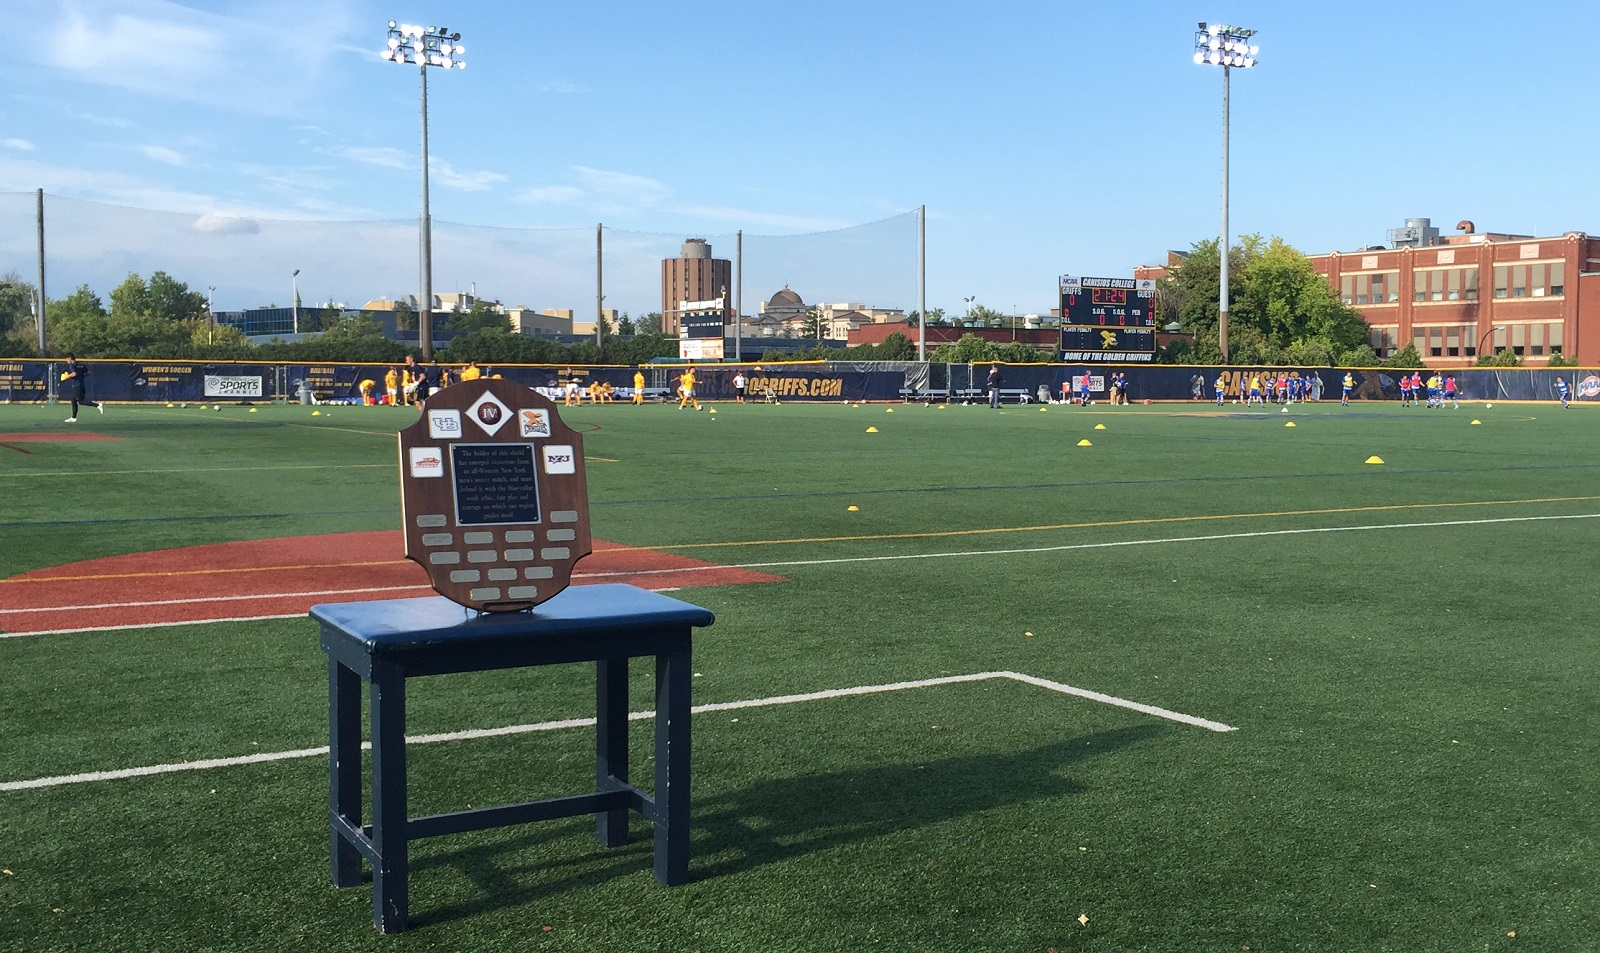 The Big 4 Shield sits on a table at the Demske Sports Complex as both teams warm up. (Ben Tsujimoto/Buffalo News)